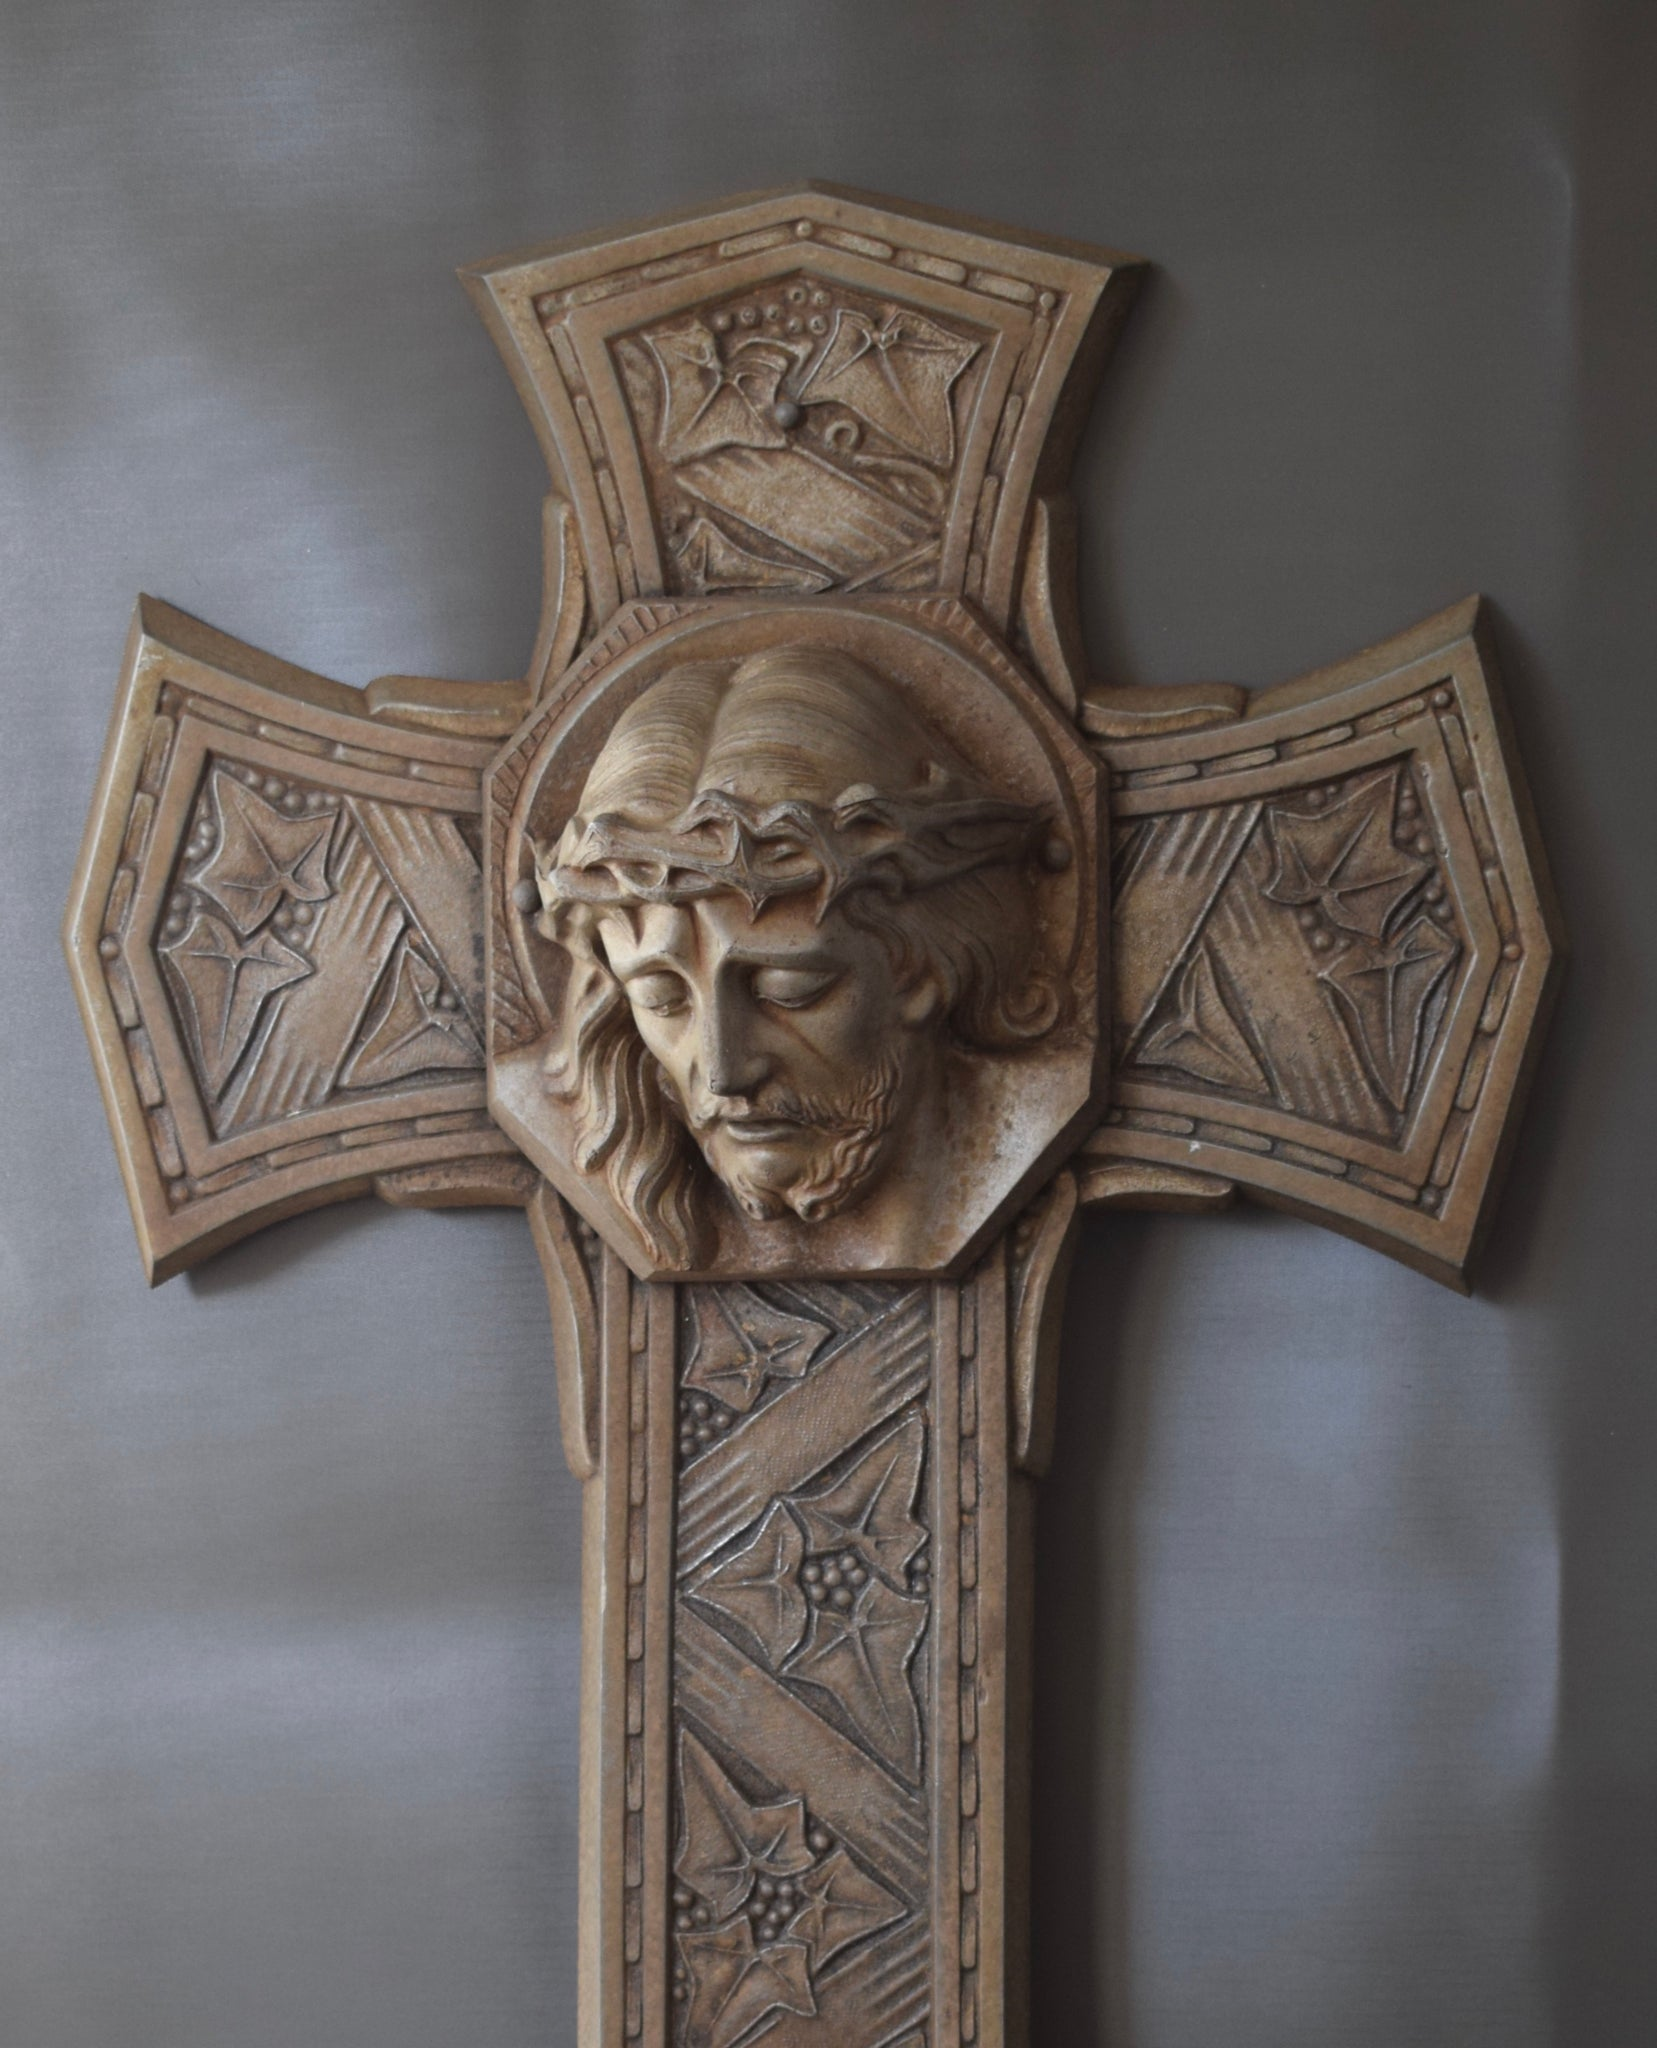 "Large French Art Deco Modernist Metal Wall Cross Crucifix with Holy Face of Jesus Christ Portrait 26"" High"